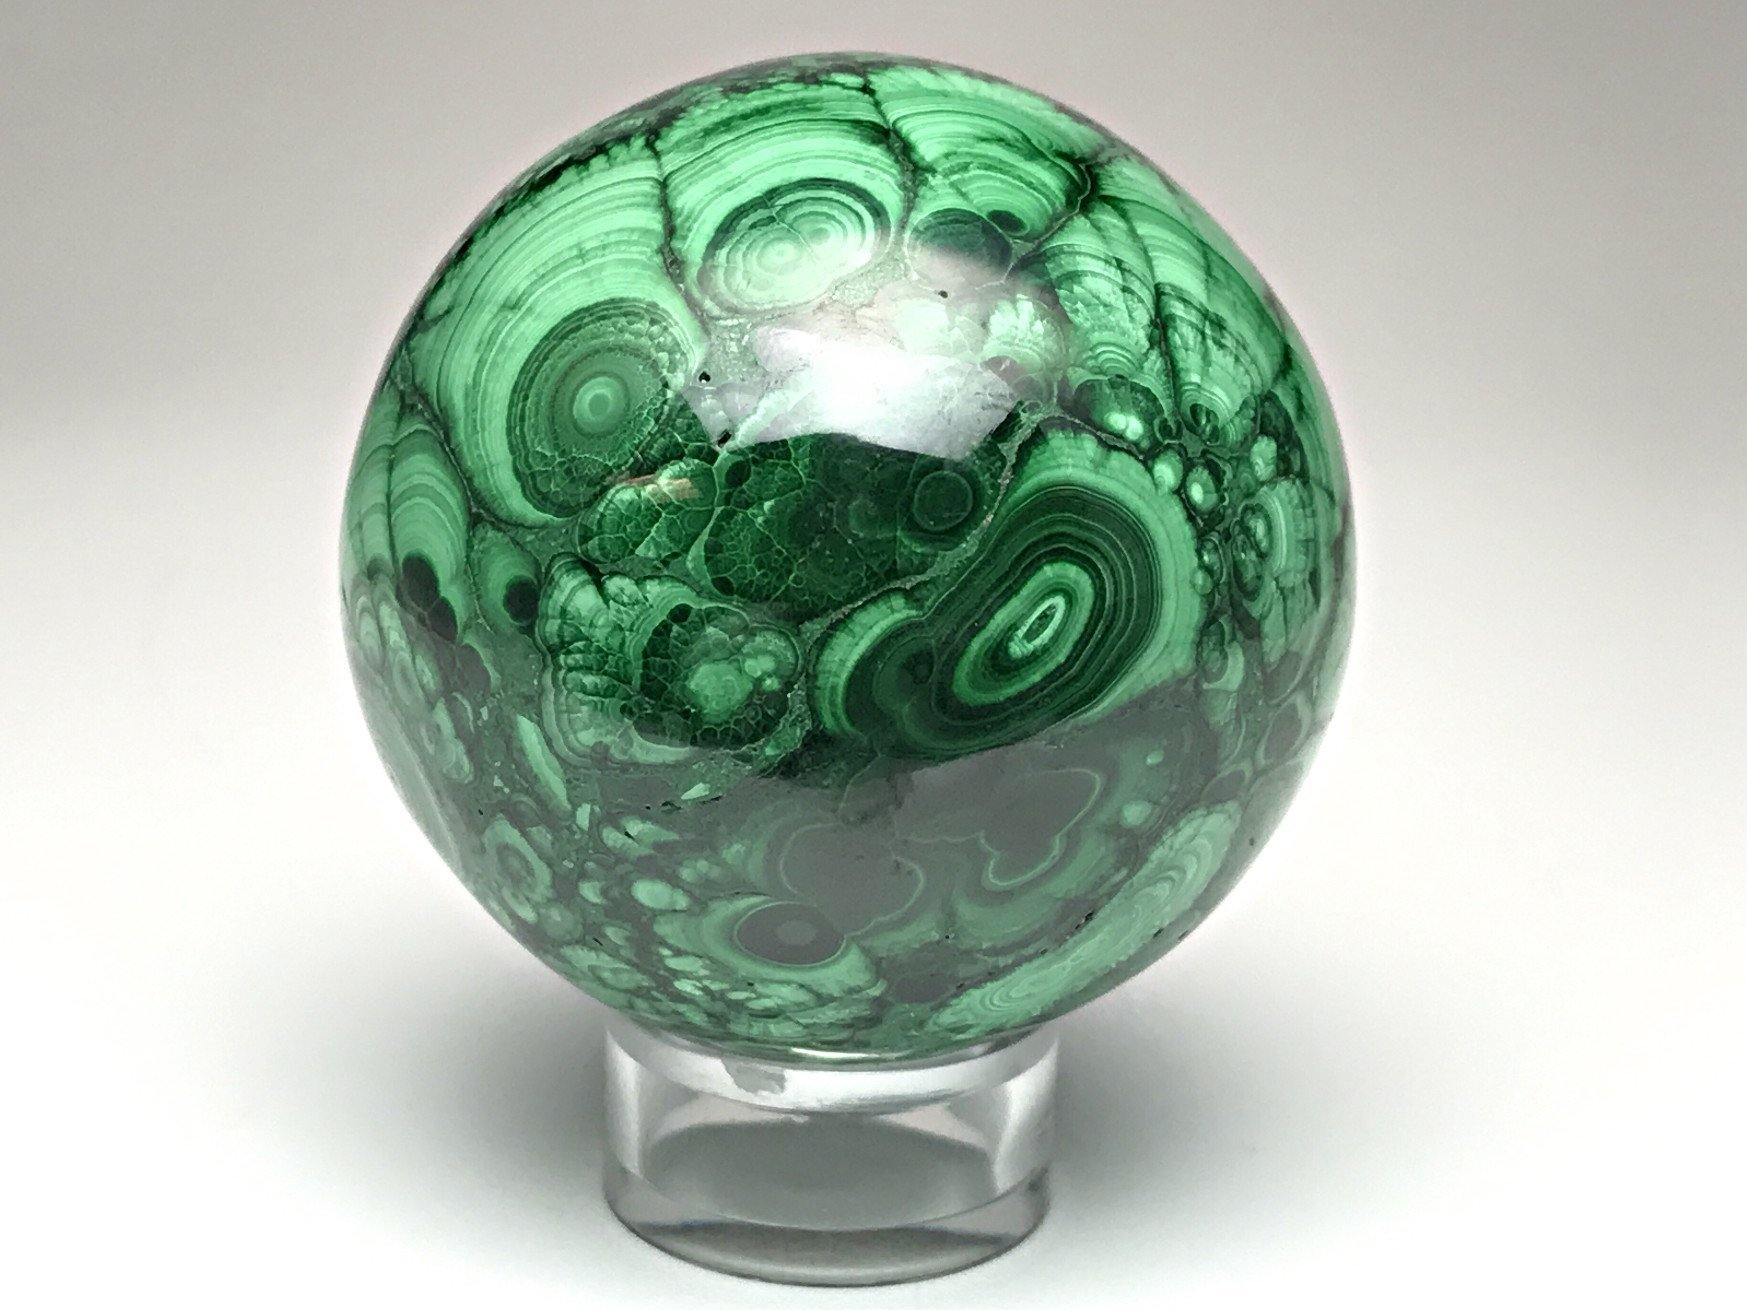 Astro Gallery Of Gems Polished Malachite Sphere - 295. 2 Grams